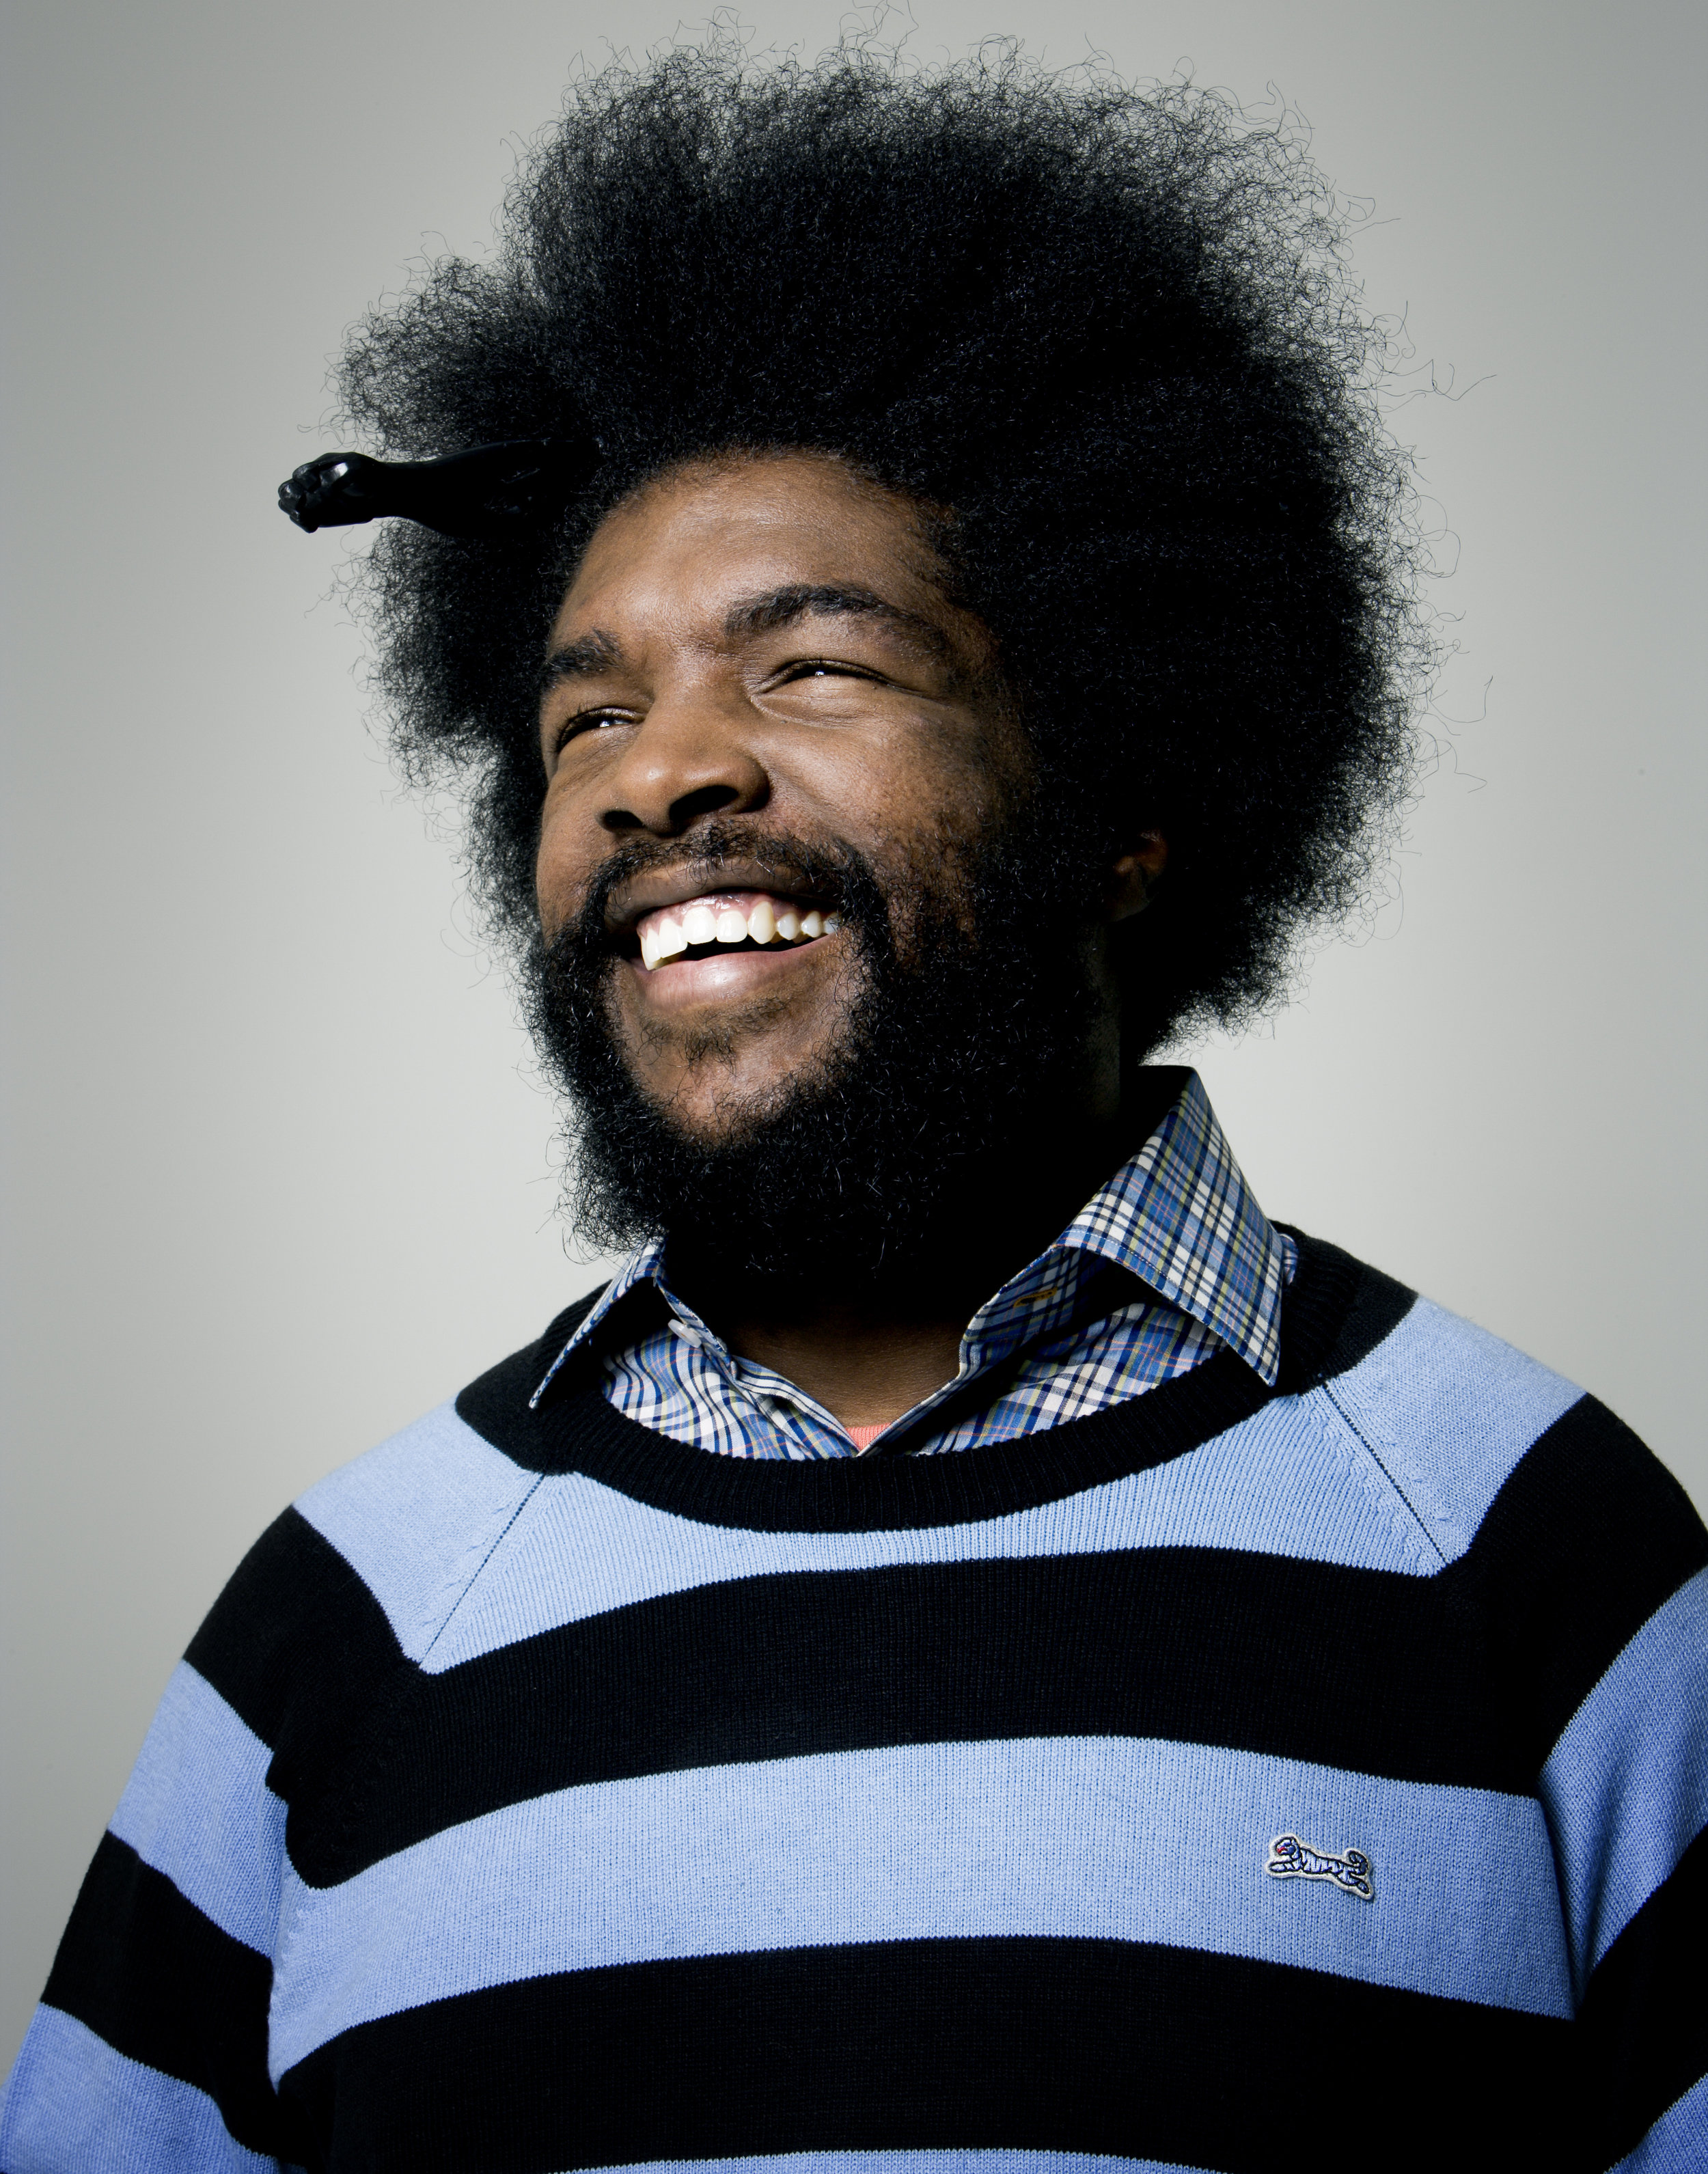 Questlove (The Roots), New York City, 2006